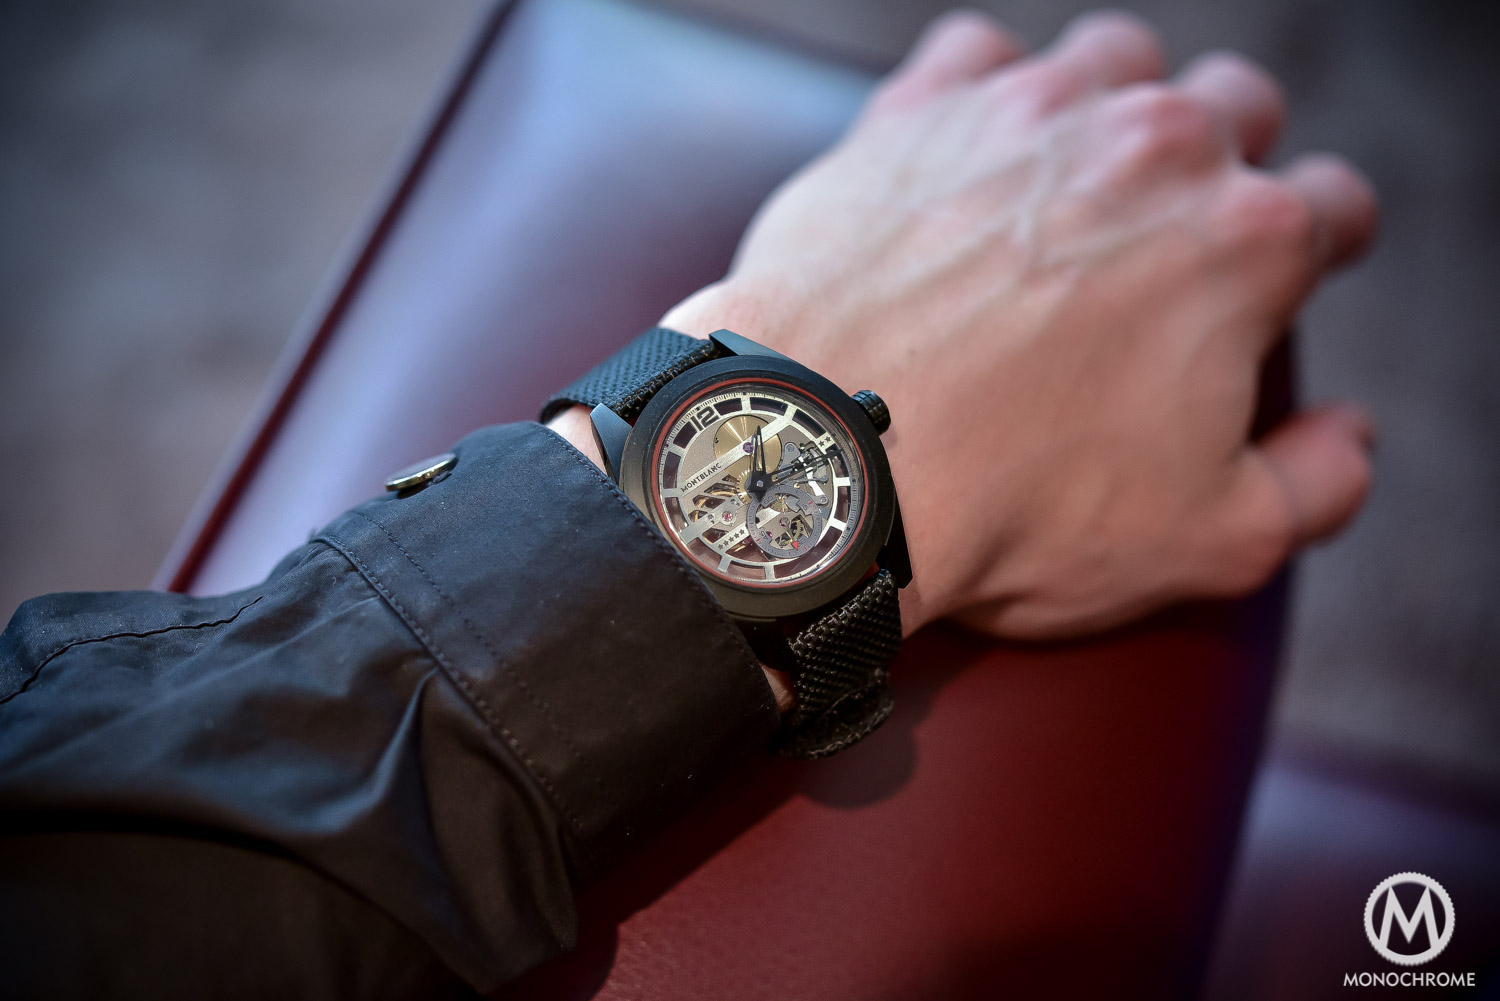 Montblanc TimeWalker Pythagore Ultra-Light Concept - Exclusive Hands-On - 8